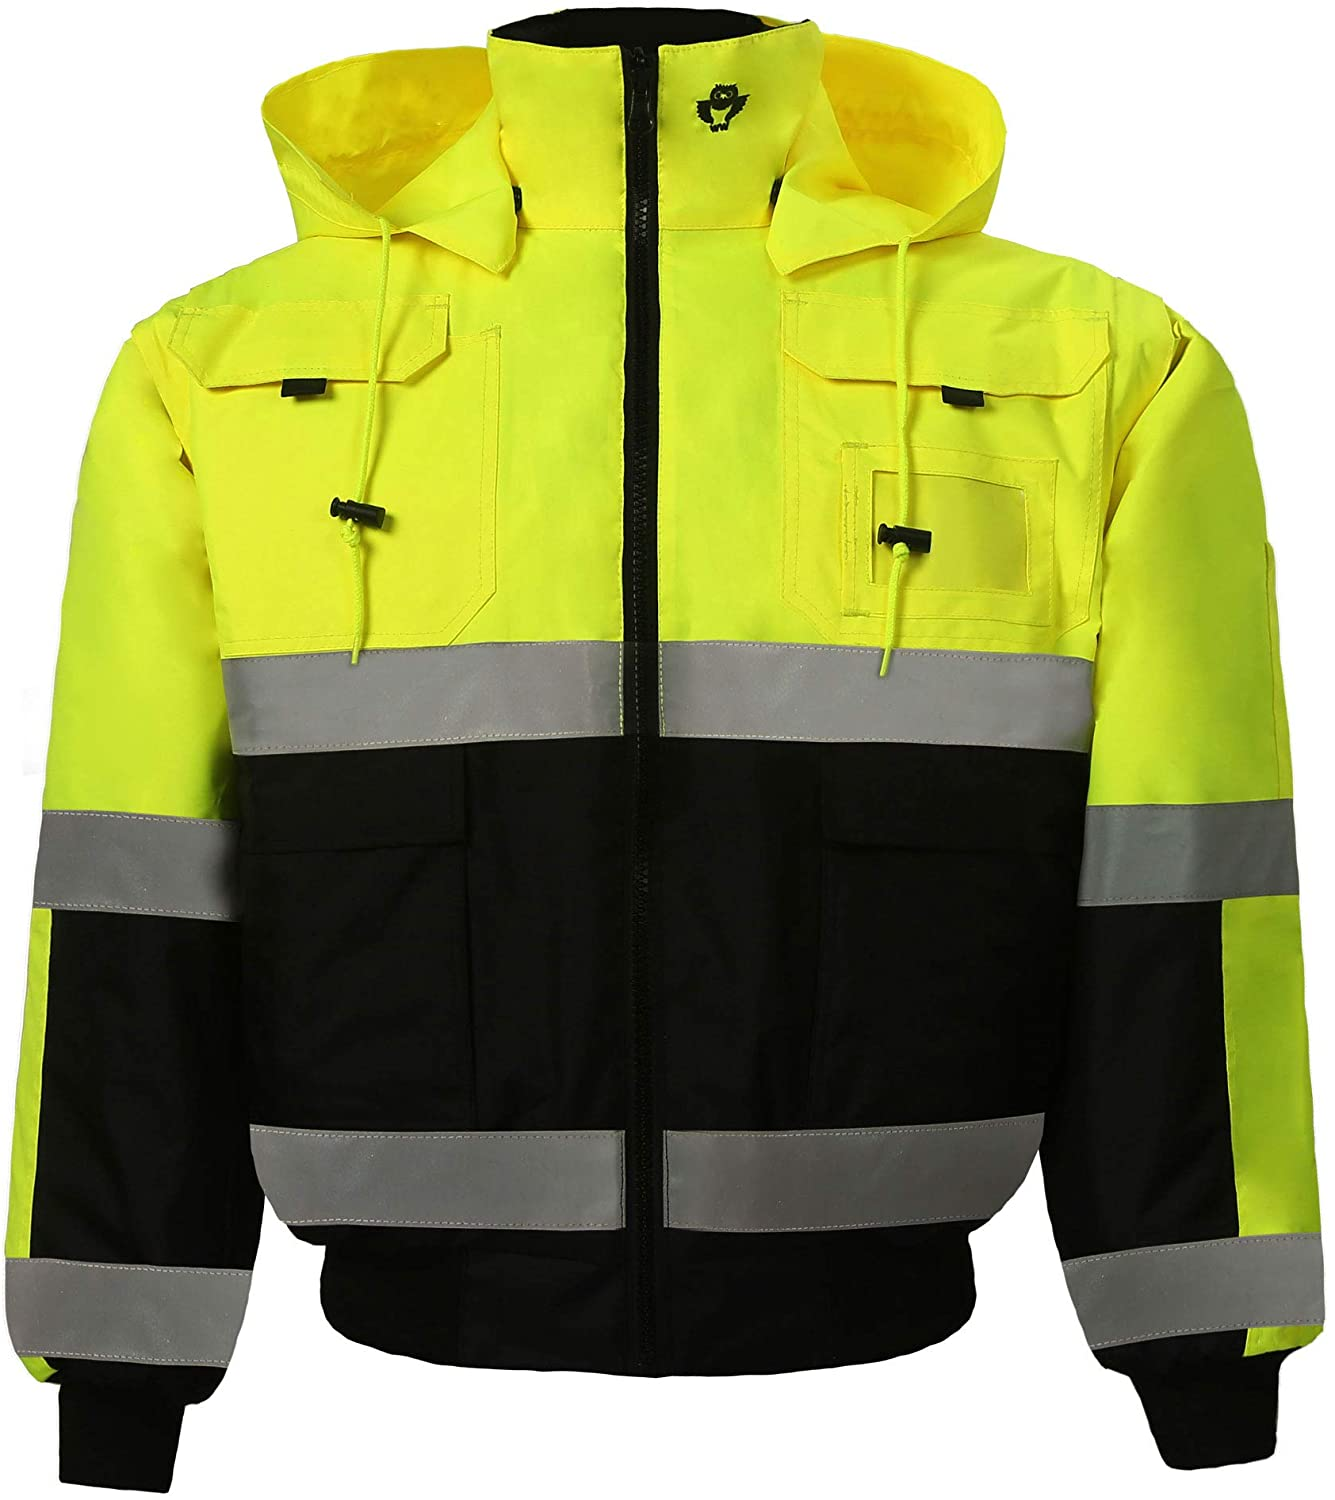 High Viz Reversible Bomber Jacket for Men and Women Waterproof Winter Safety Work Coat Two Tone Ansi Class 3 (Small, Lime/Black, 1 Piece)